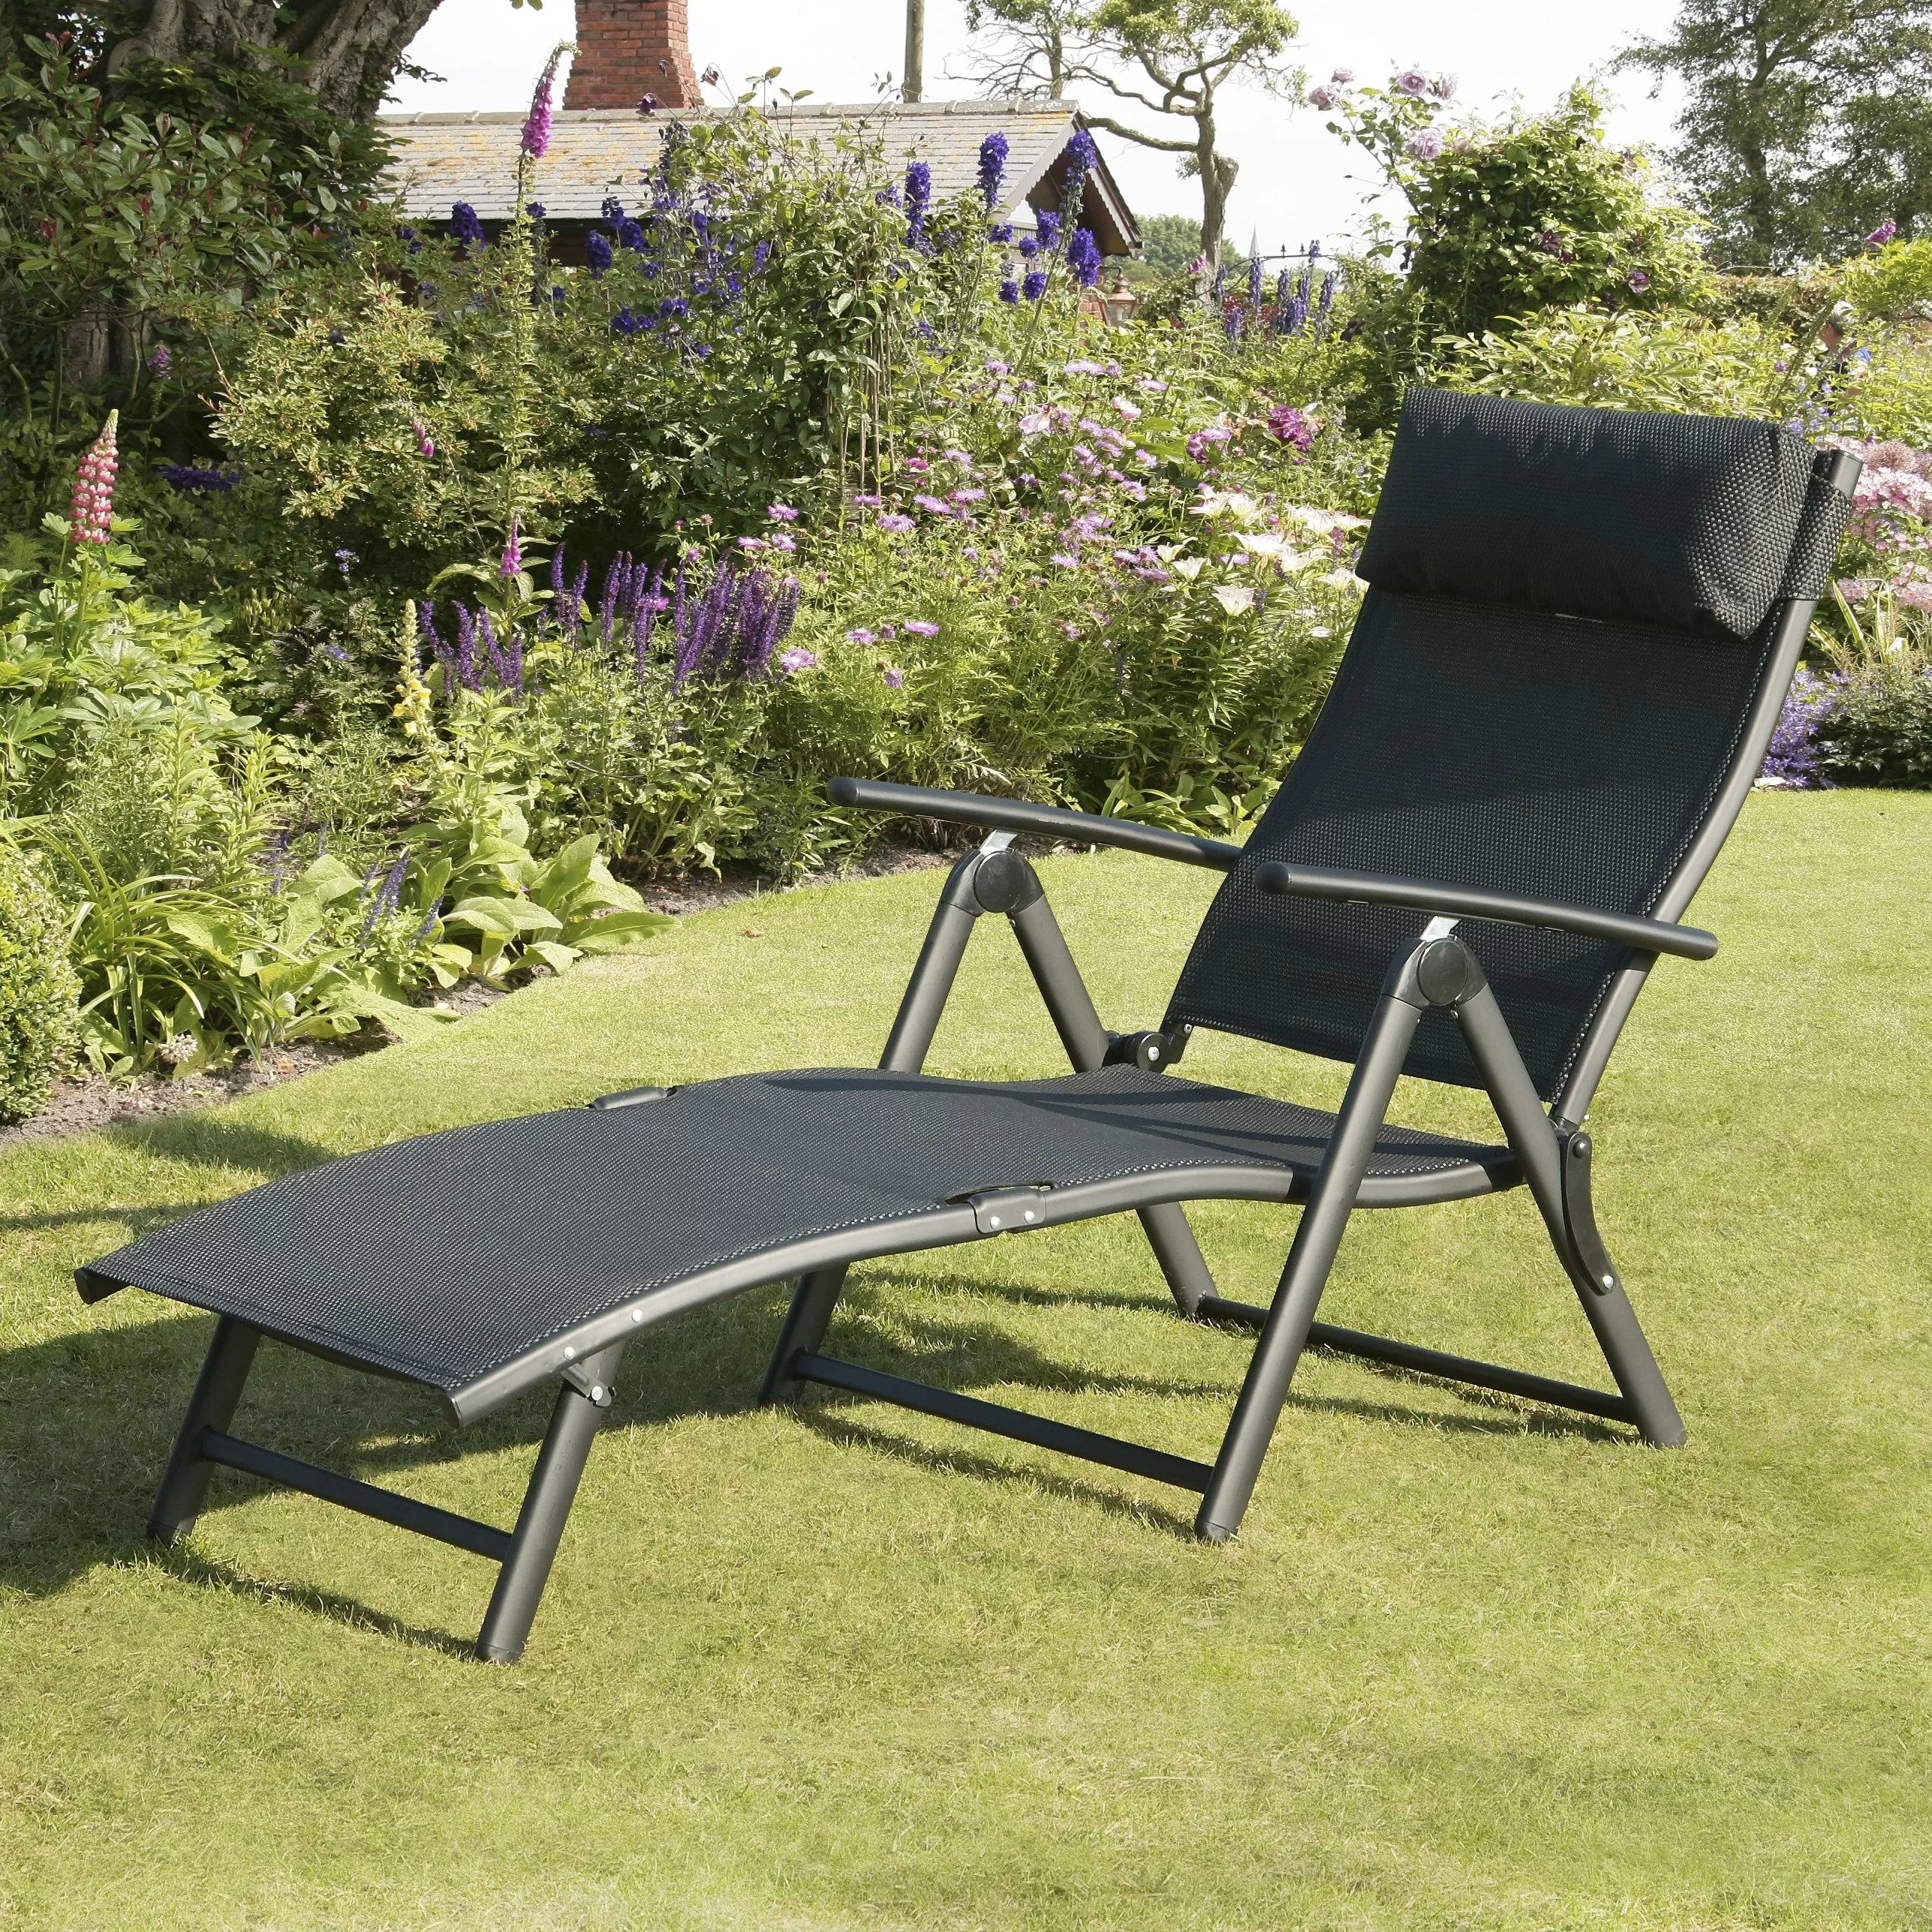 SunTime Outdoor Living Havana Chaise Lounge & Reviews ... on Suntime Outdoor Living  id=28587